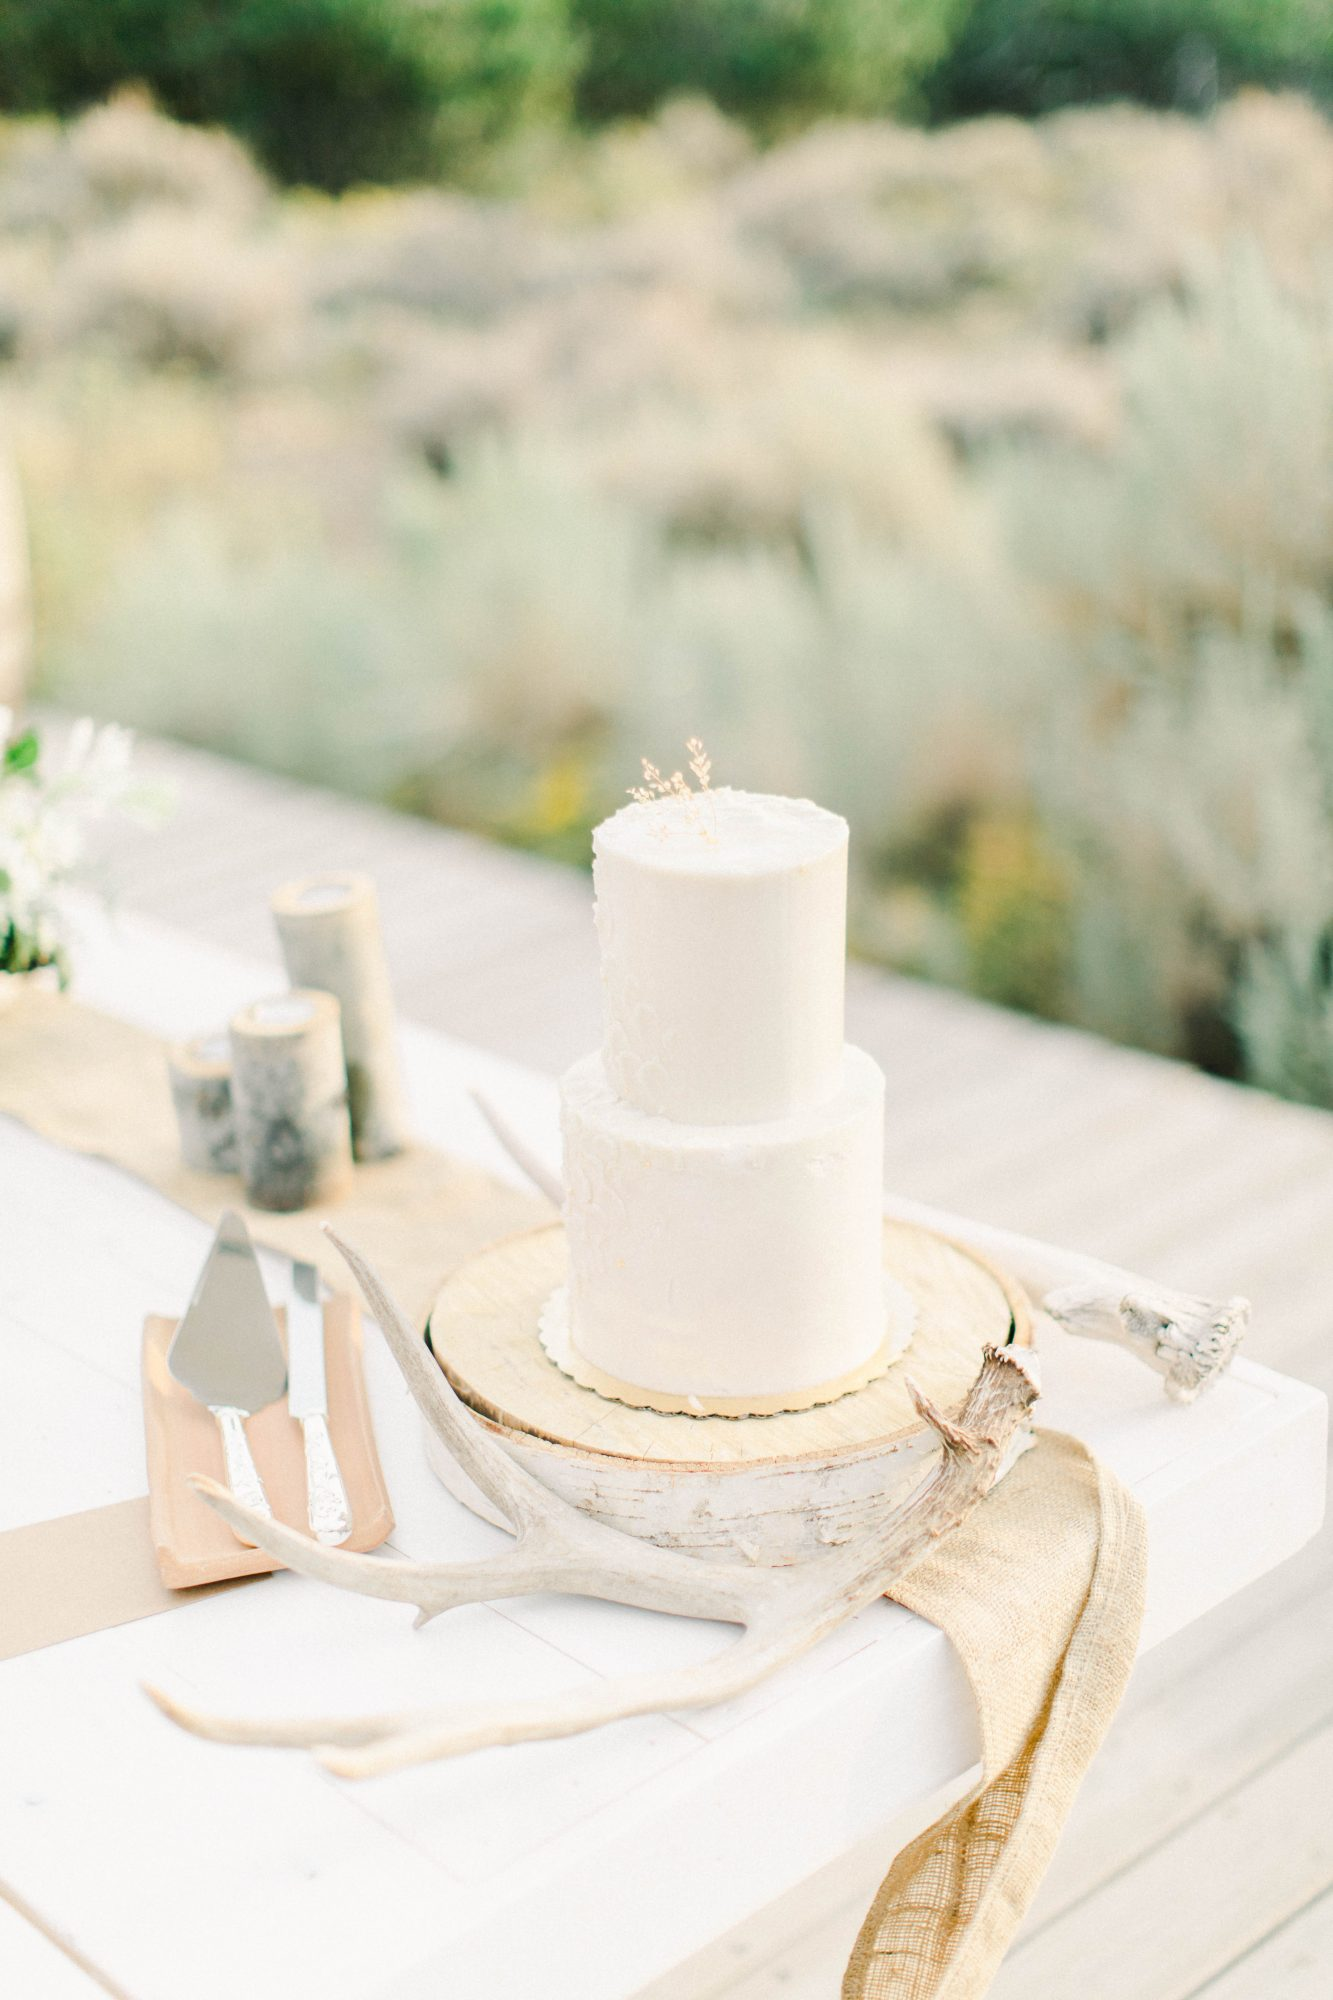 Two-tier wedding cake with serveware